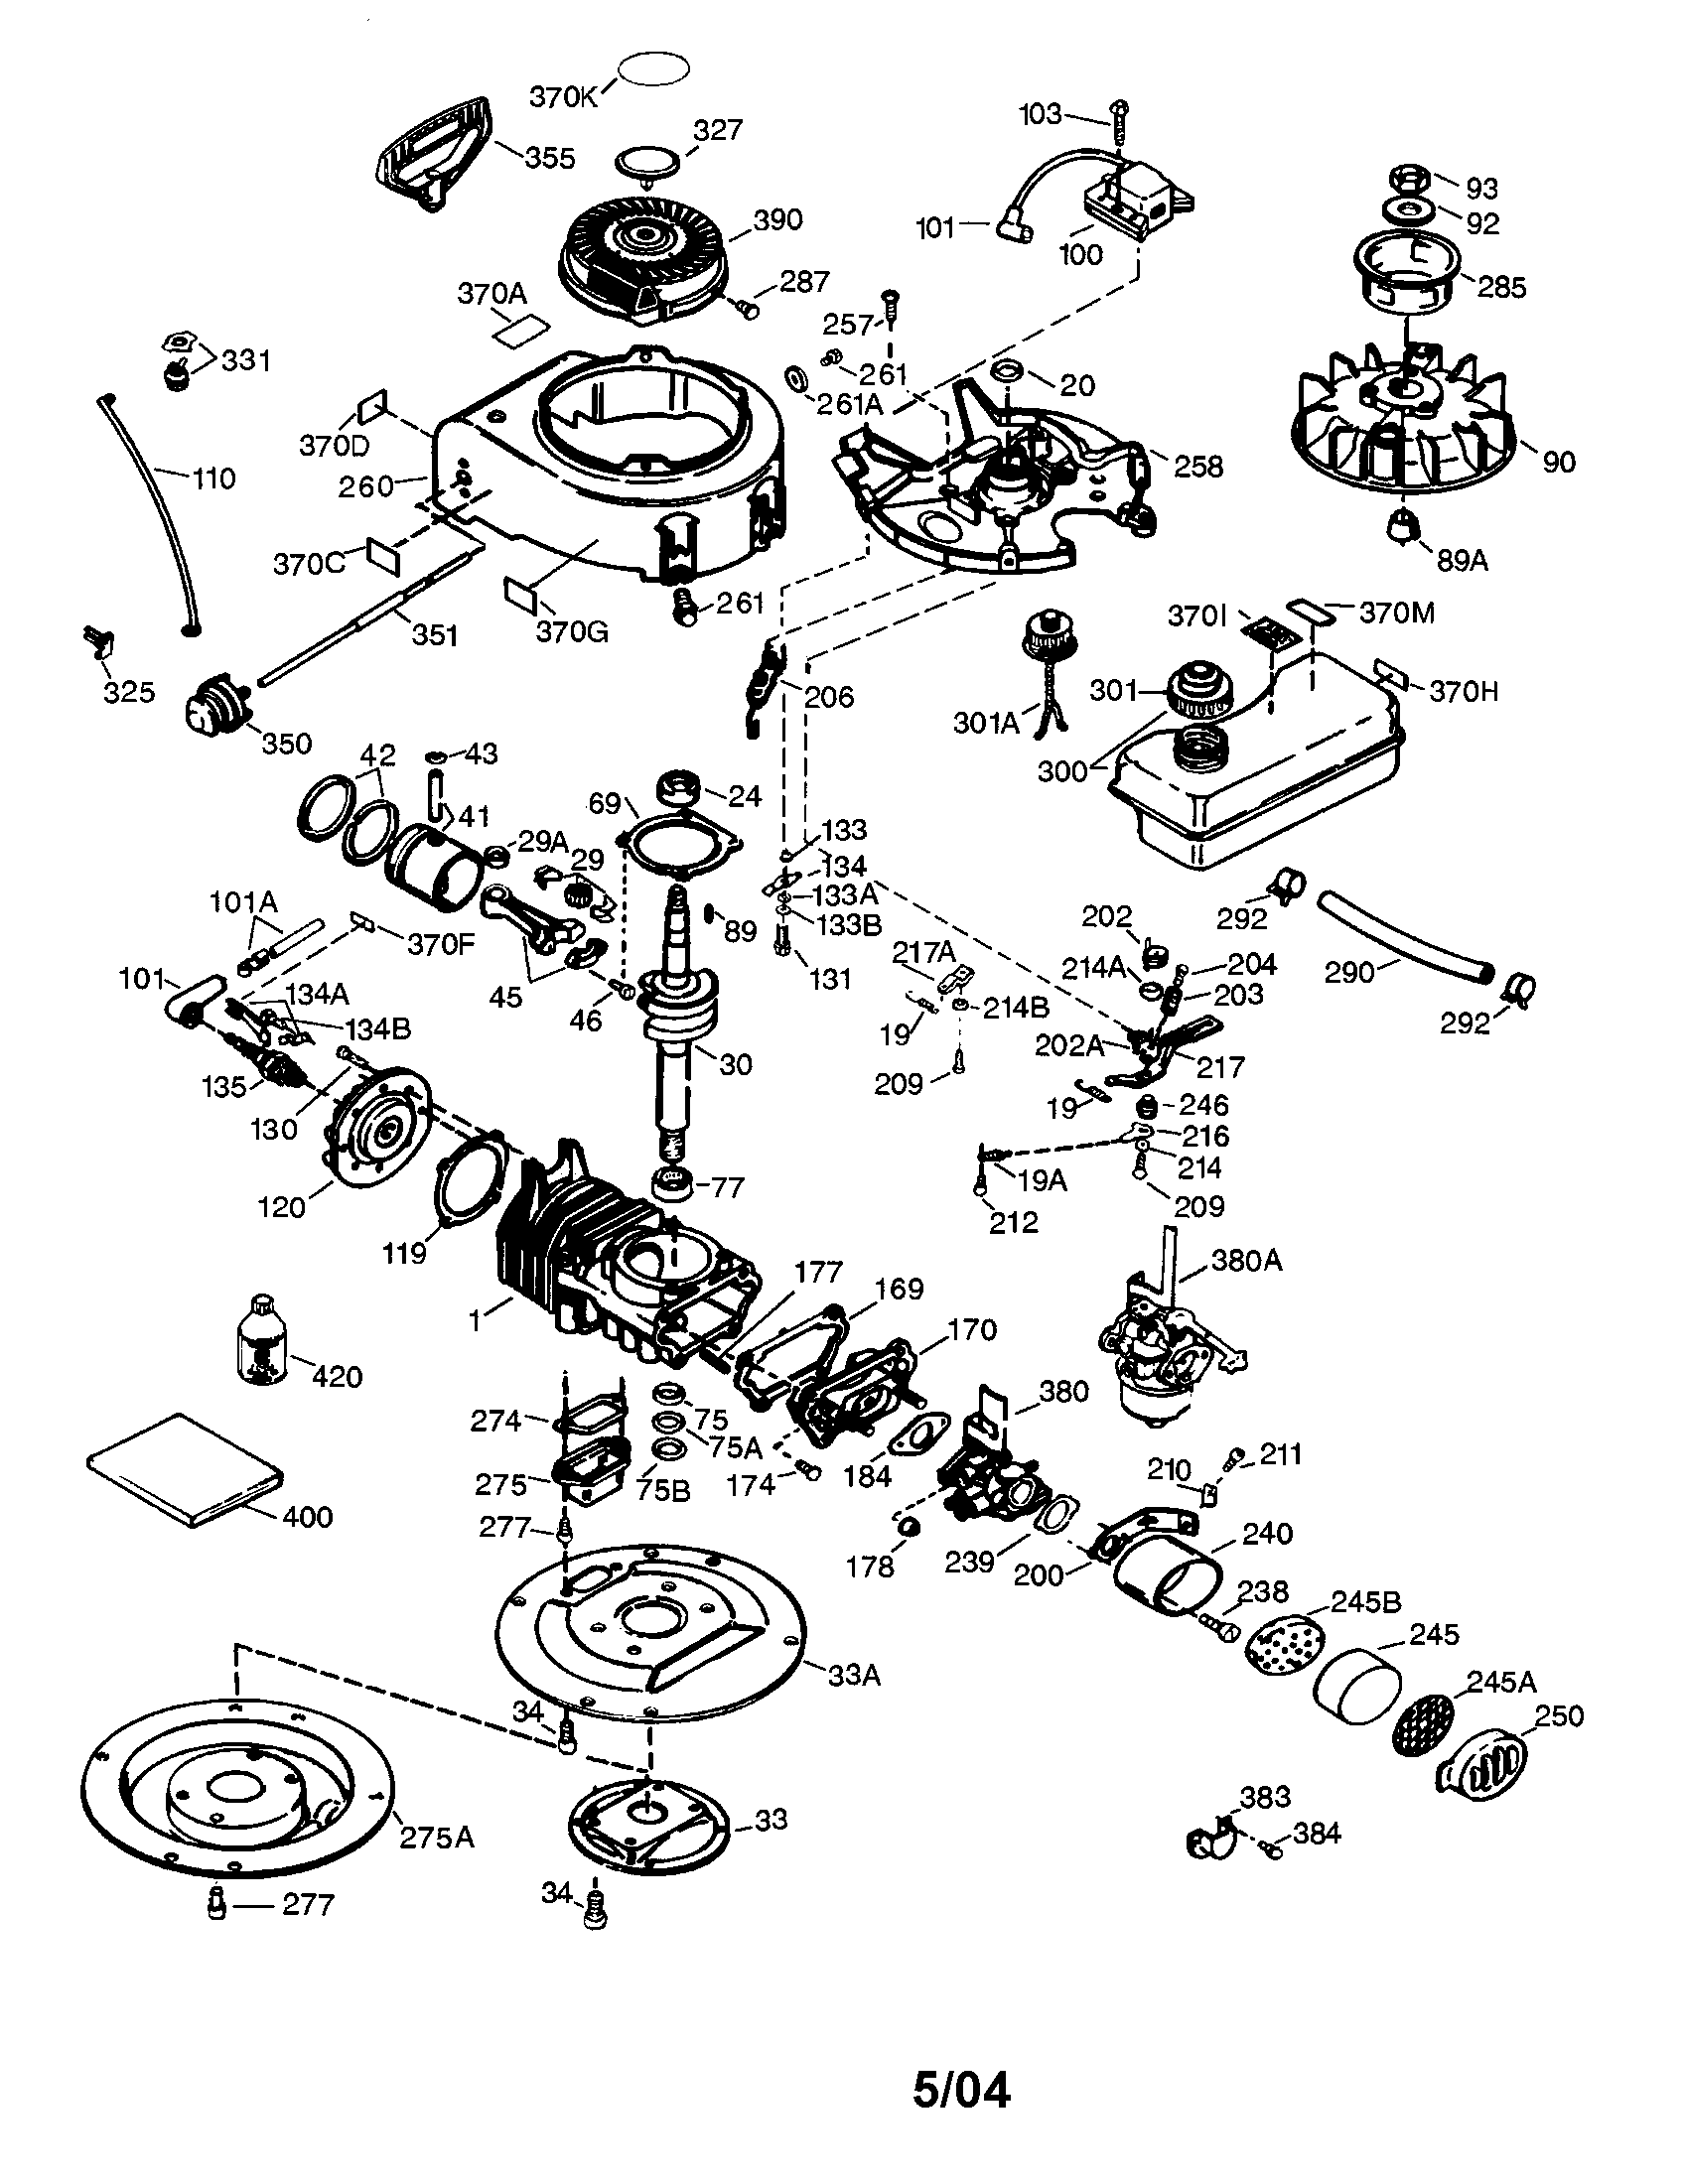 TECUMSEH ENGINE Diagram & Parts List for Model